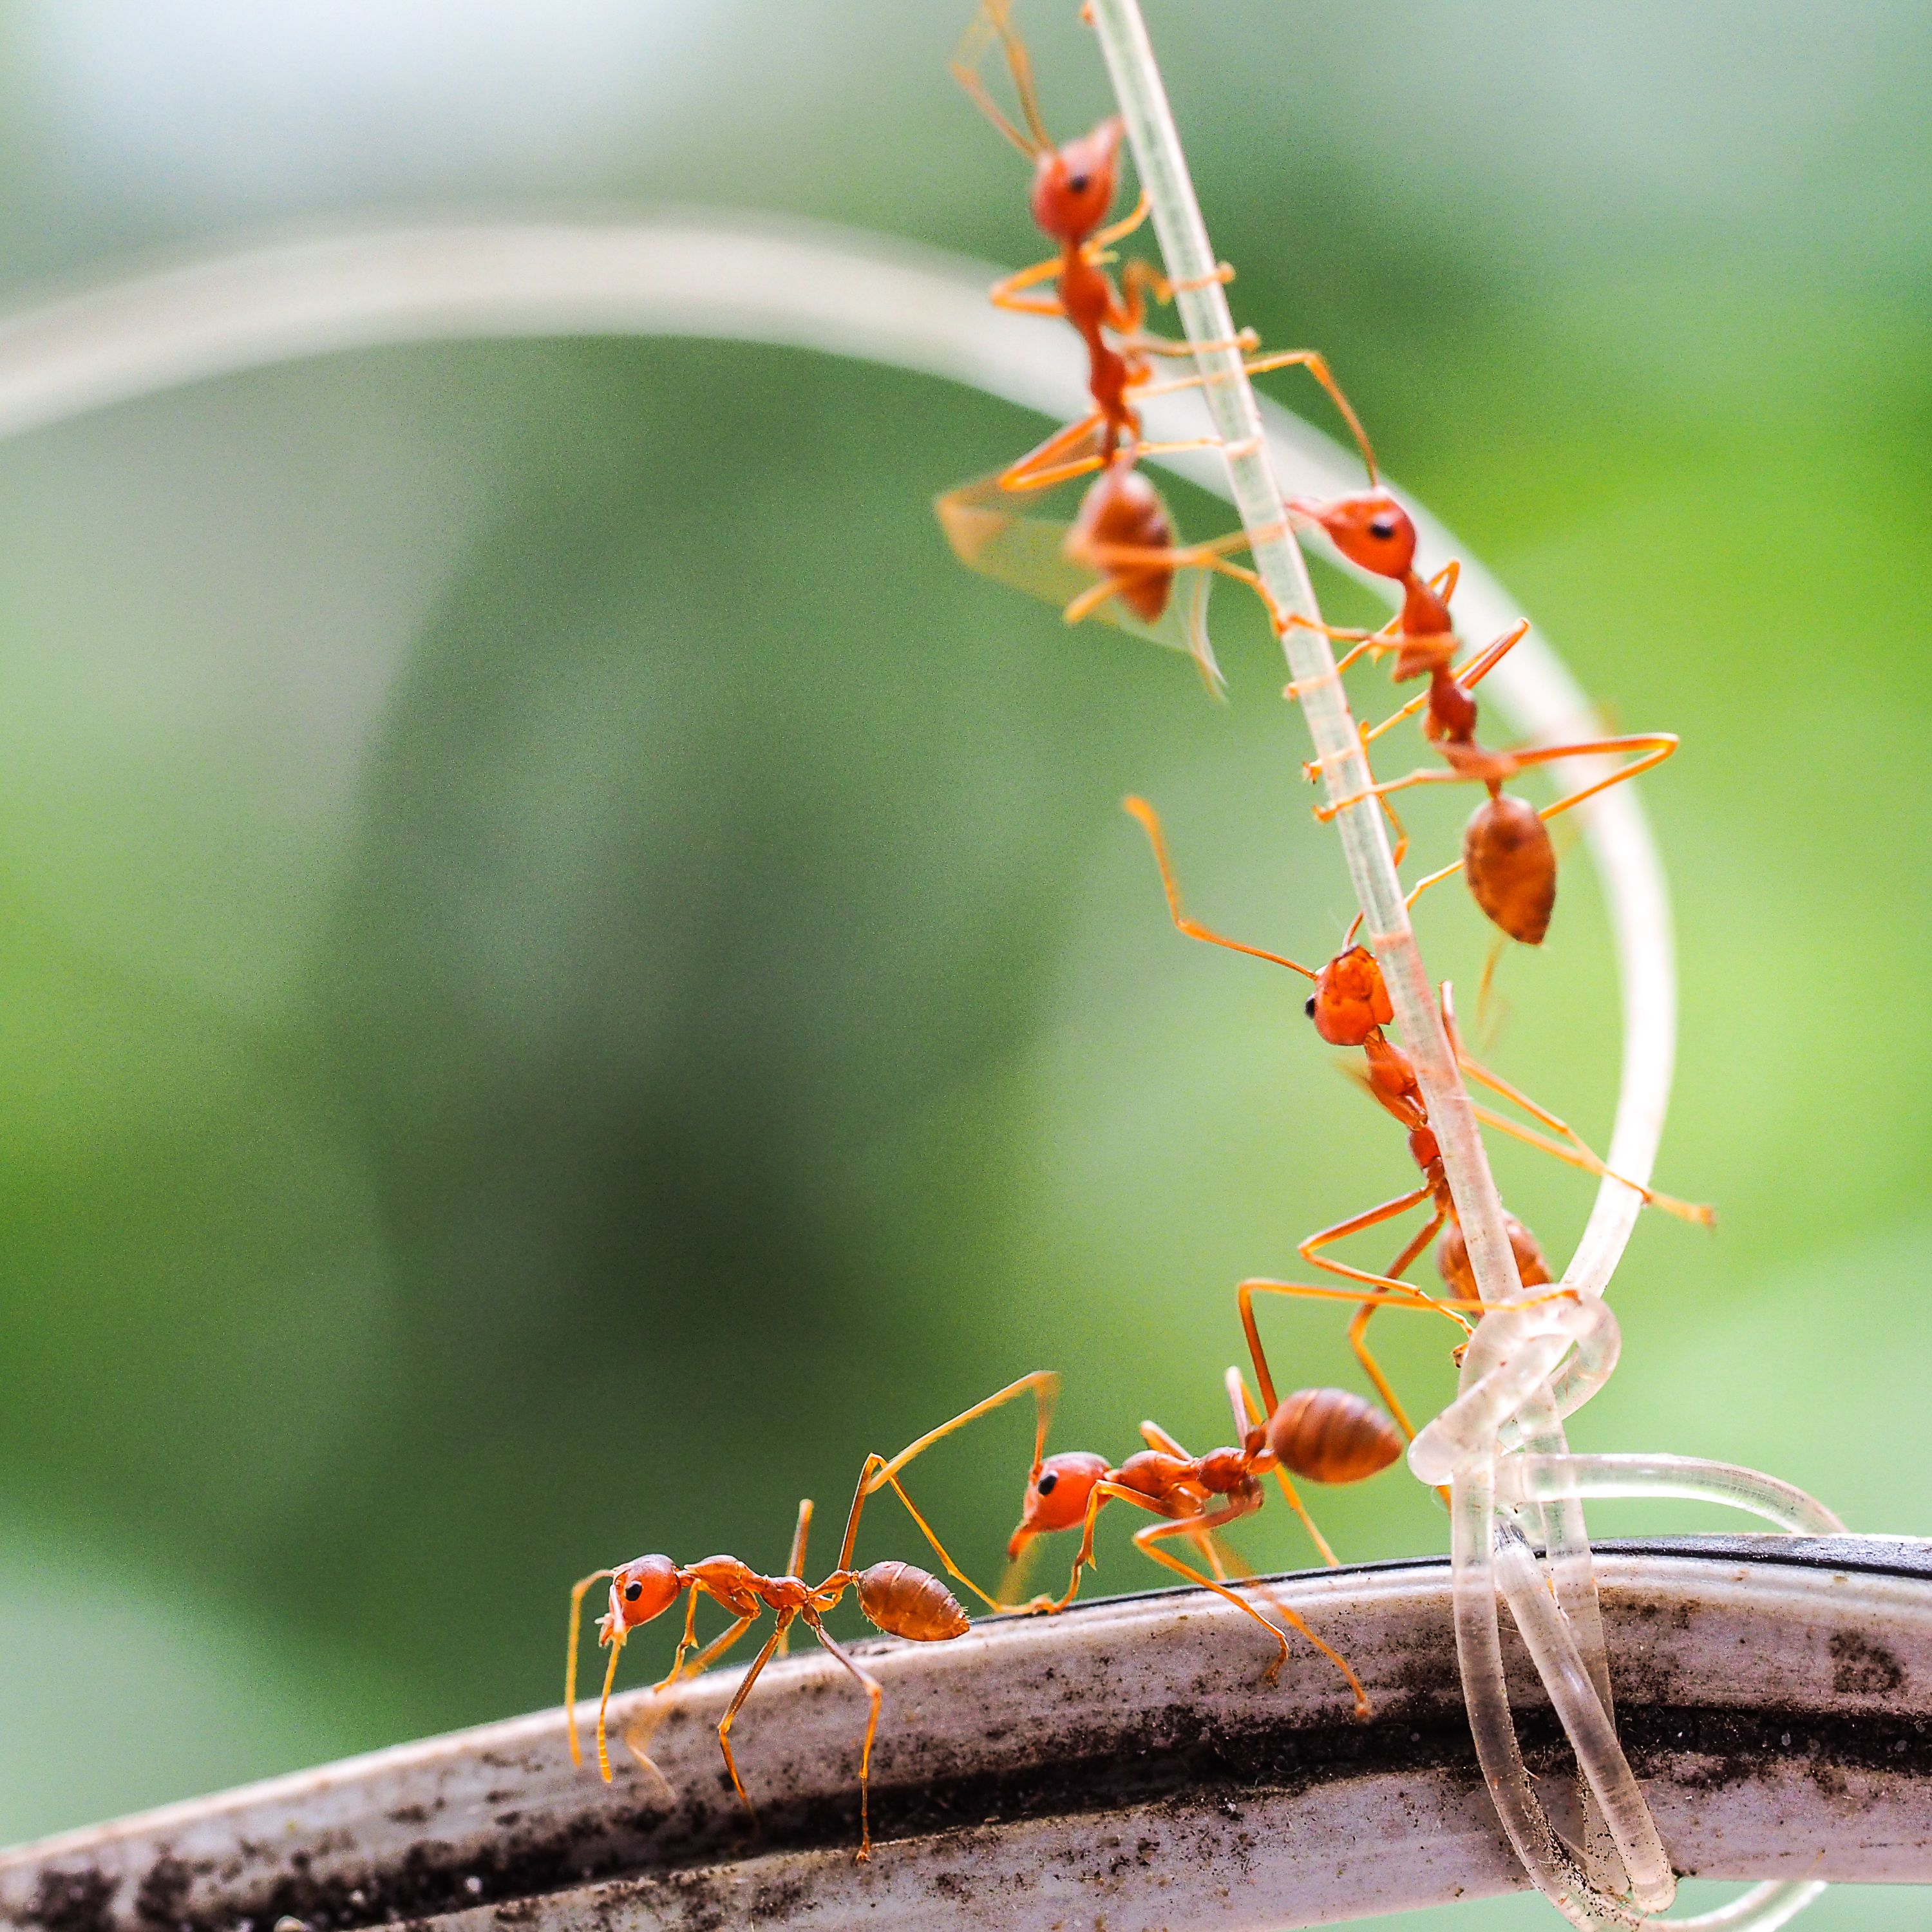 What You Need To Know About Fire Ants